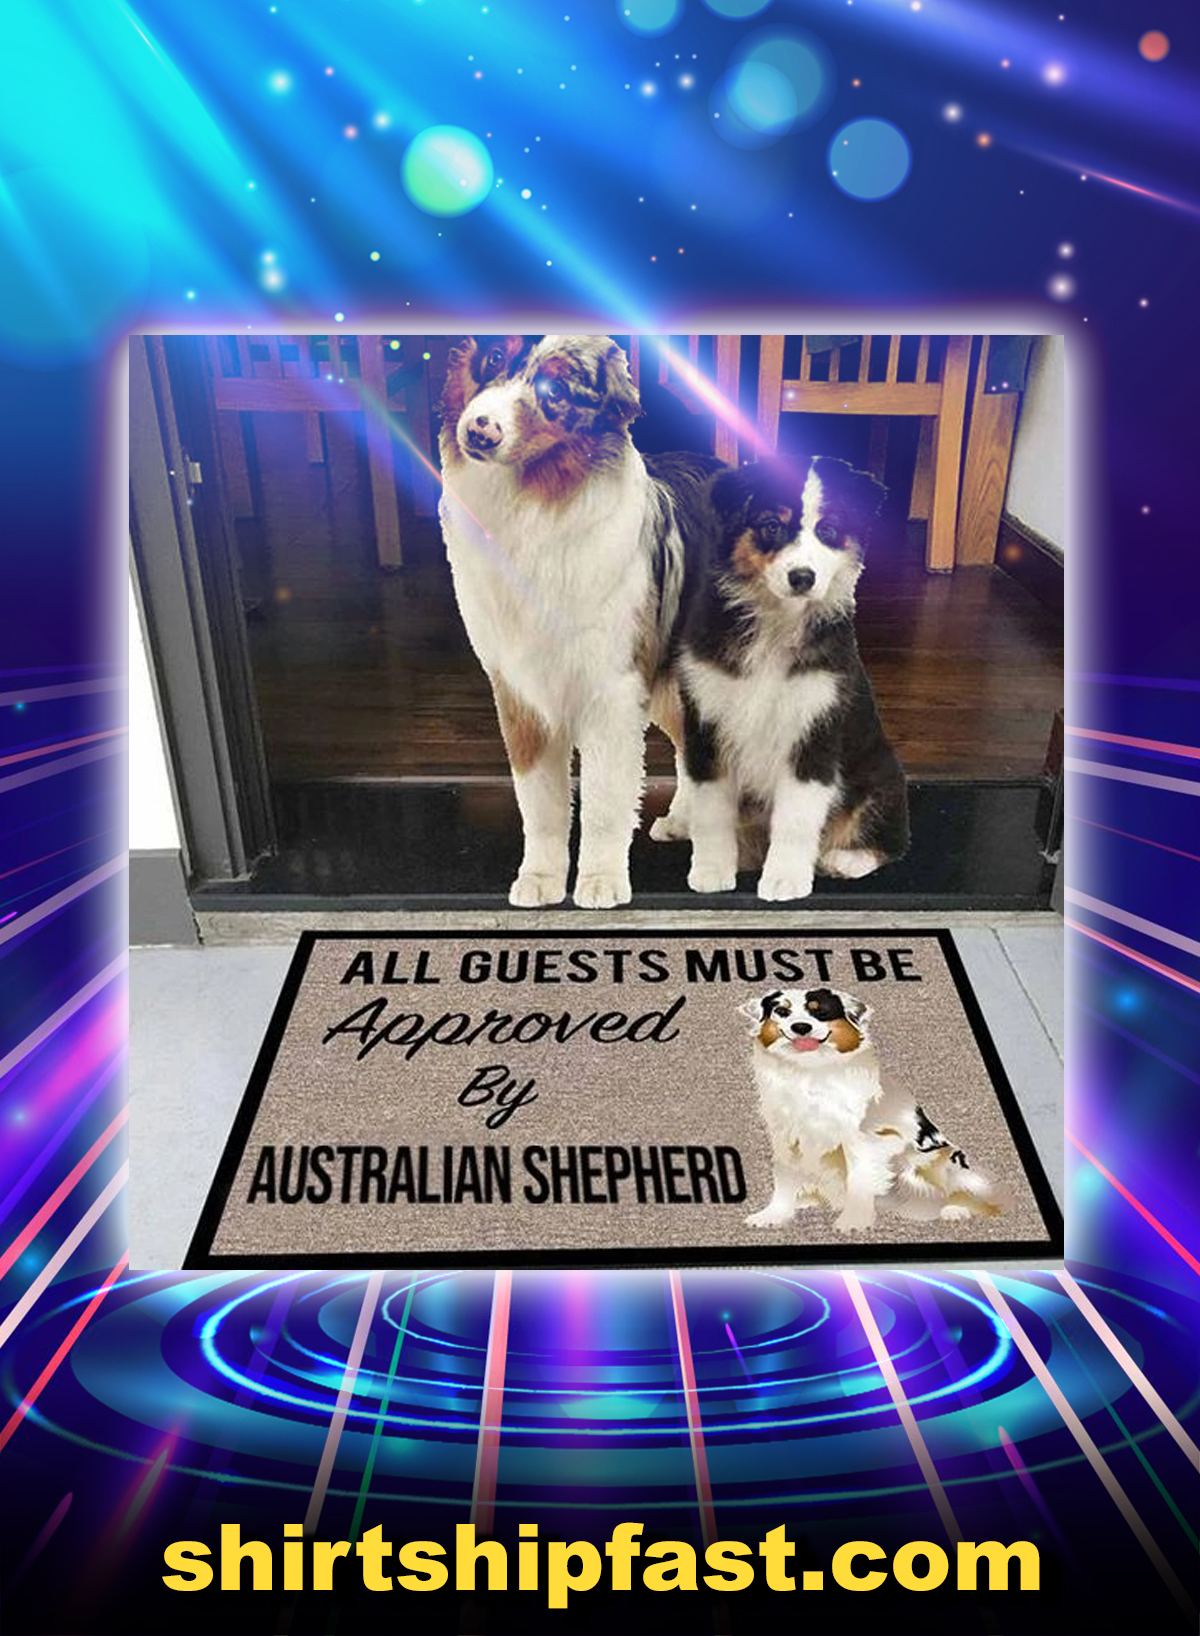 All guests must be approved by australian shepherd doormat